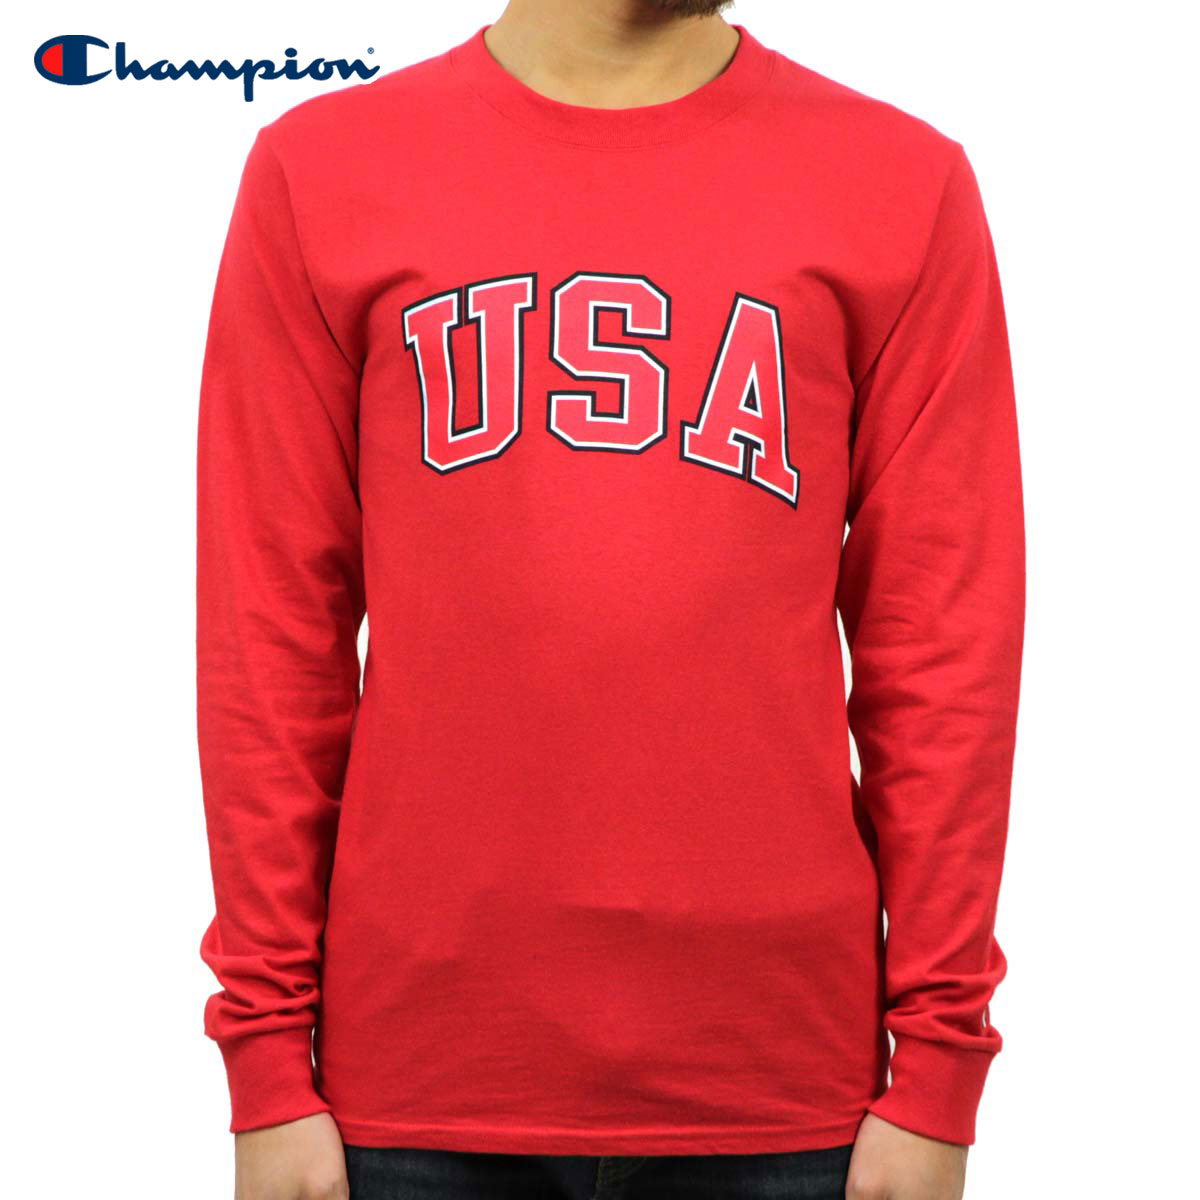 8c1f0e825a Champion CHAMPION regular article men long sleeves T-shirt L/S TEE T2229P  Cotton Long Sleeve Tee W3J-RED #549593 USA Arch LS D00S15